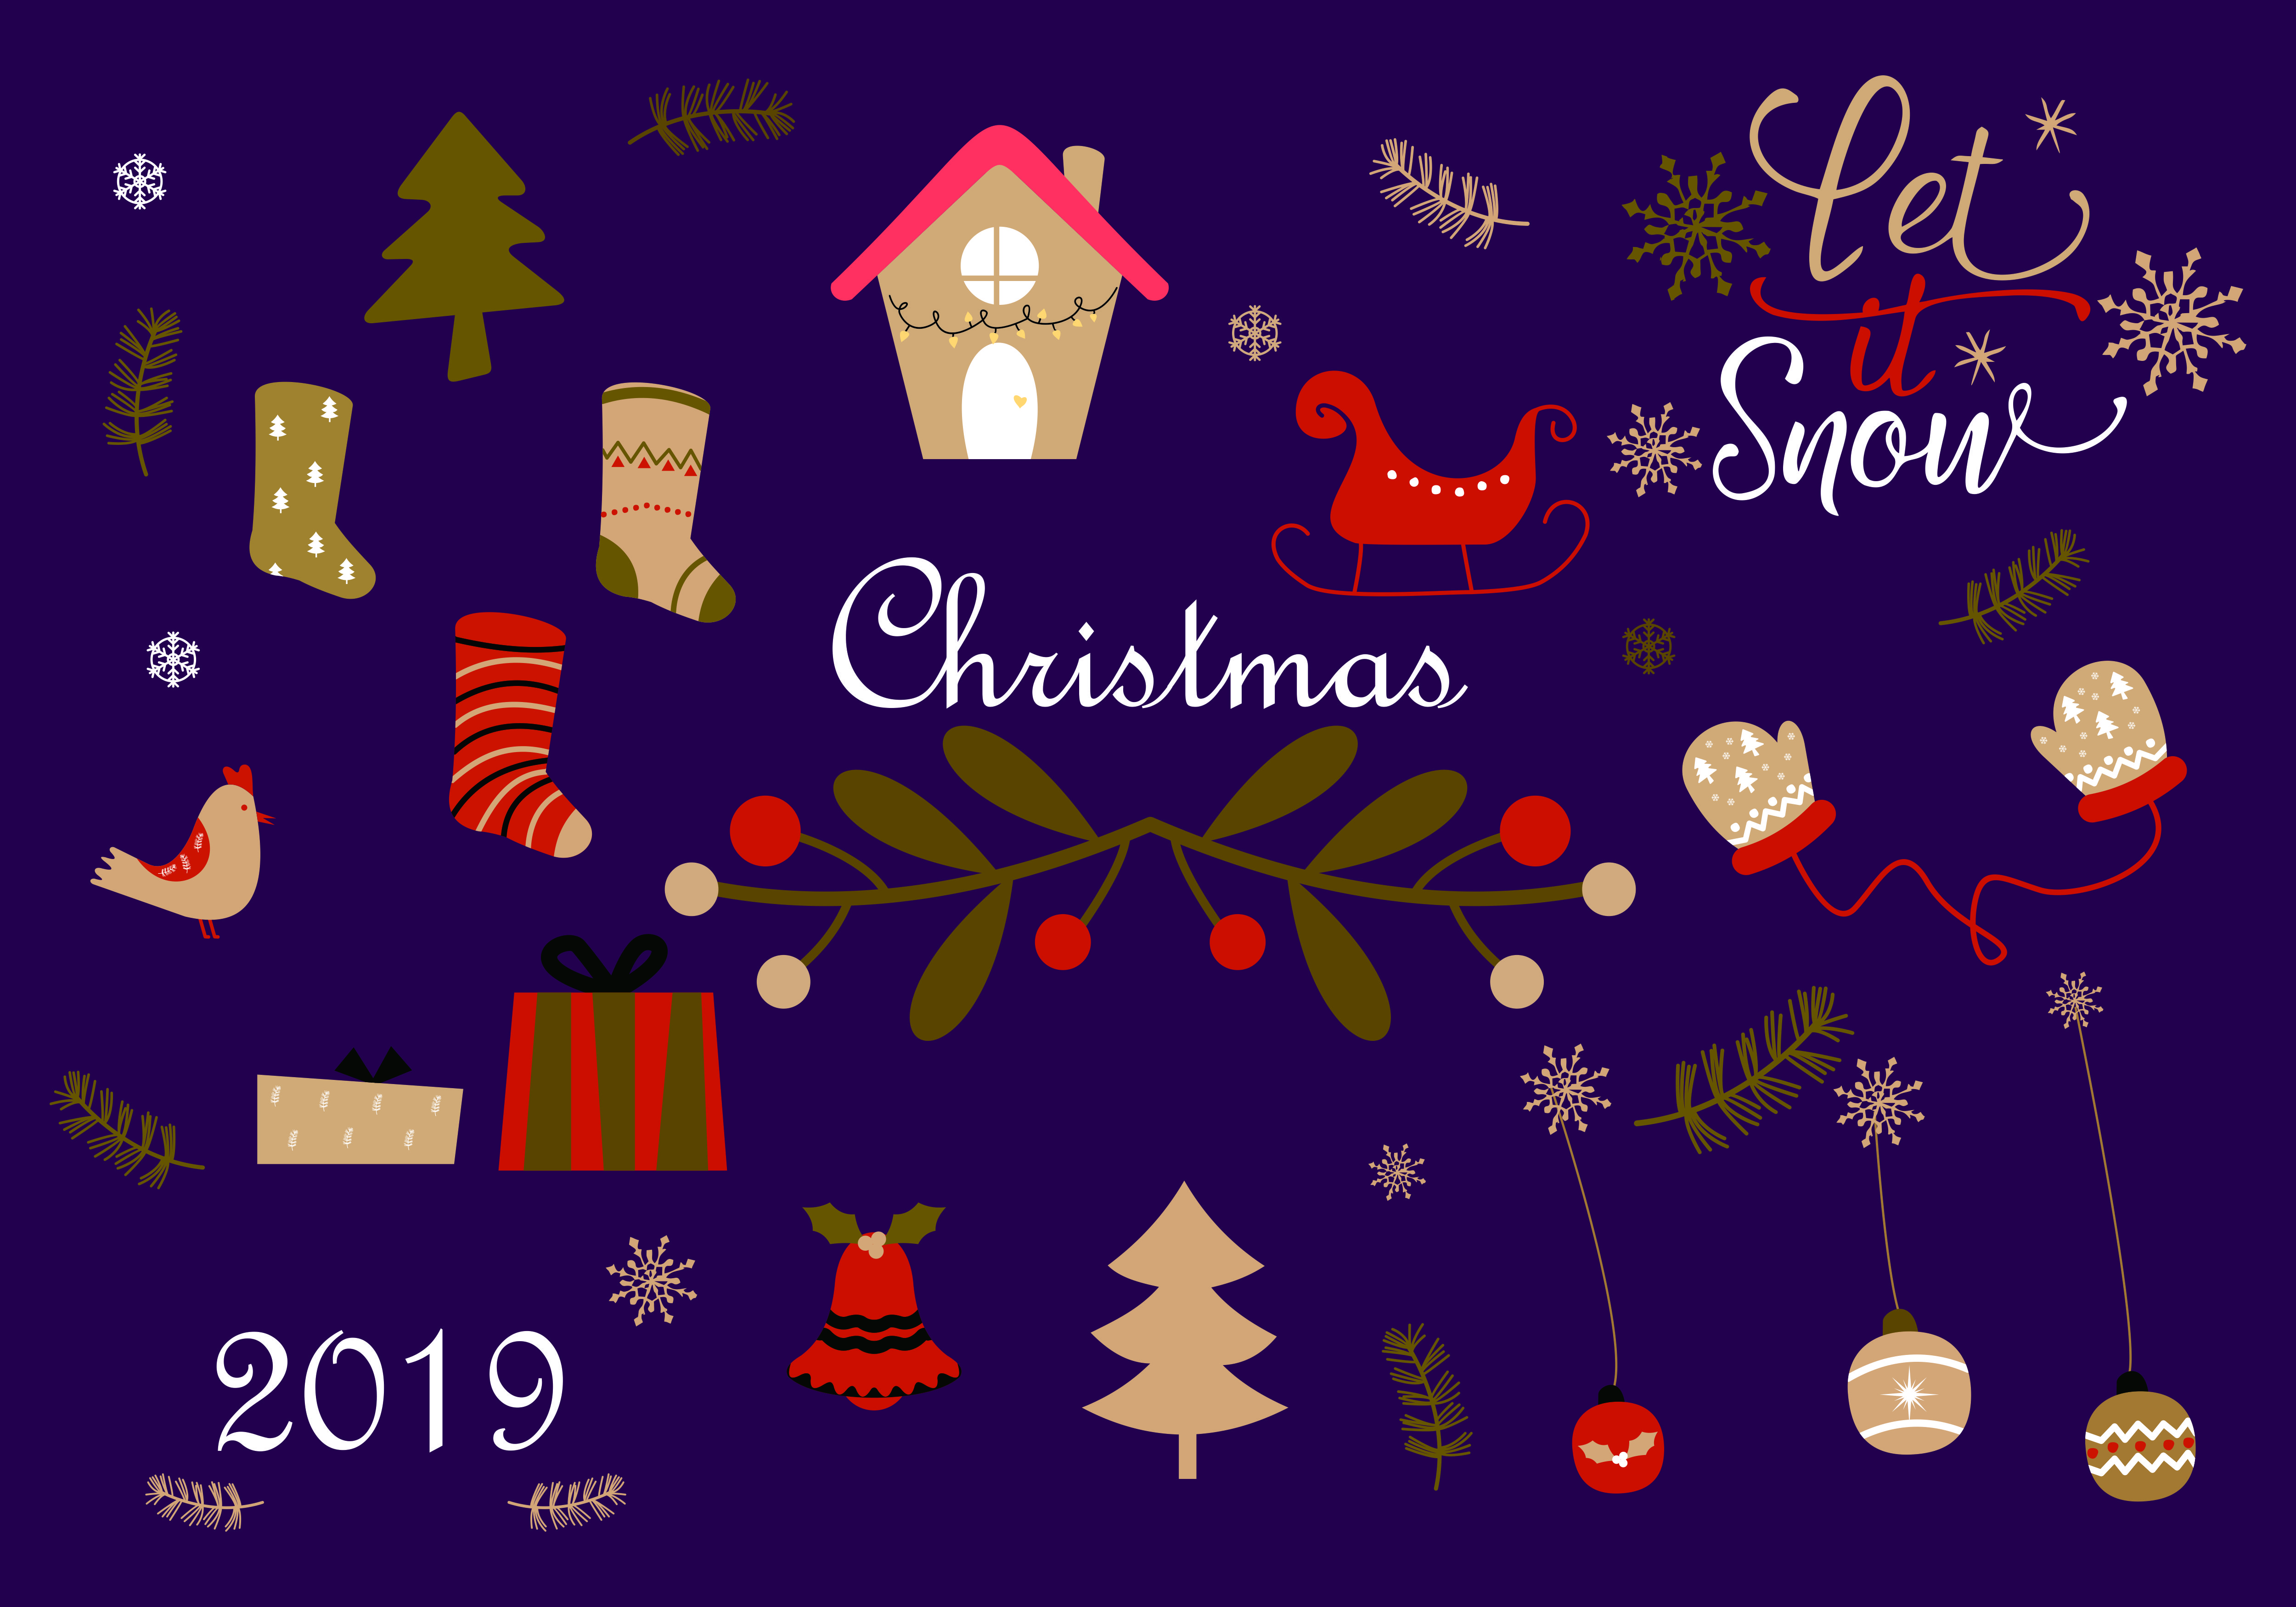 Download Free Merry Christmas And Christmas Gift Logo Graphic By Deemka Studio for Cricut Explore, Silhouette and other cutting machines.